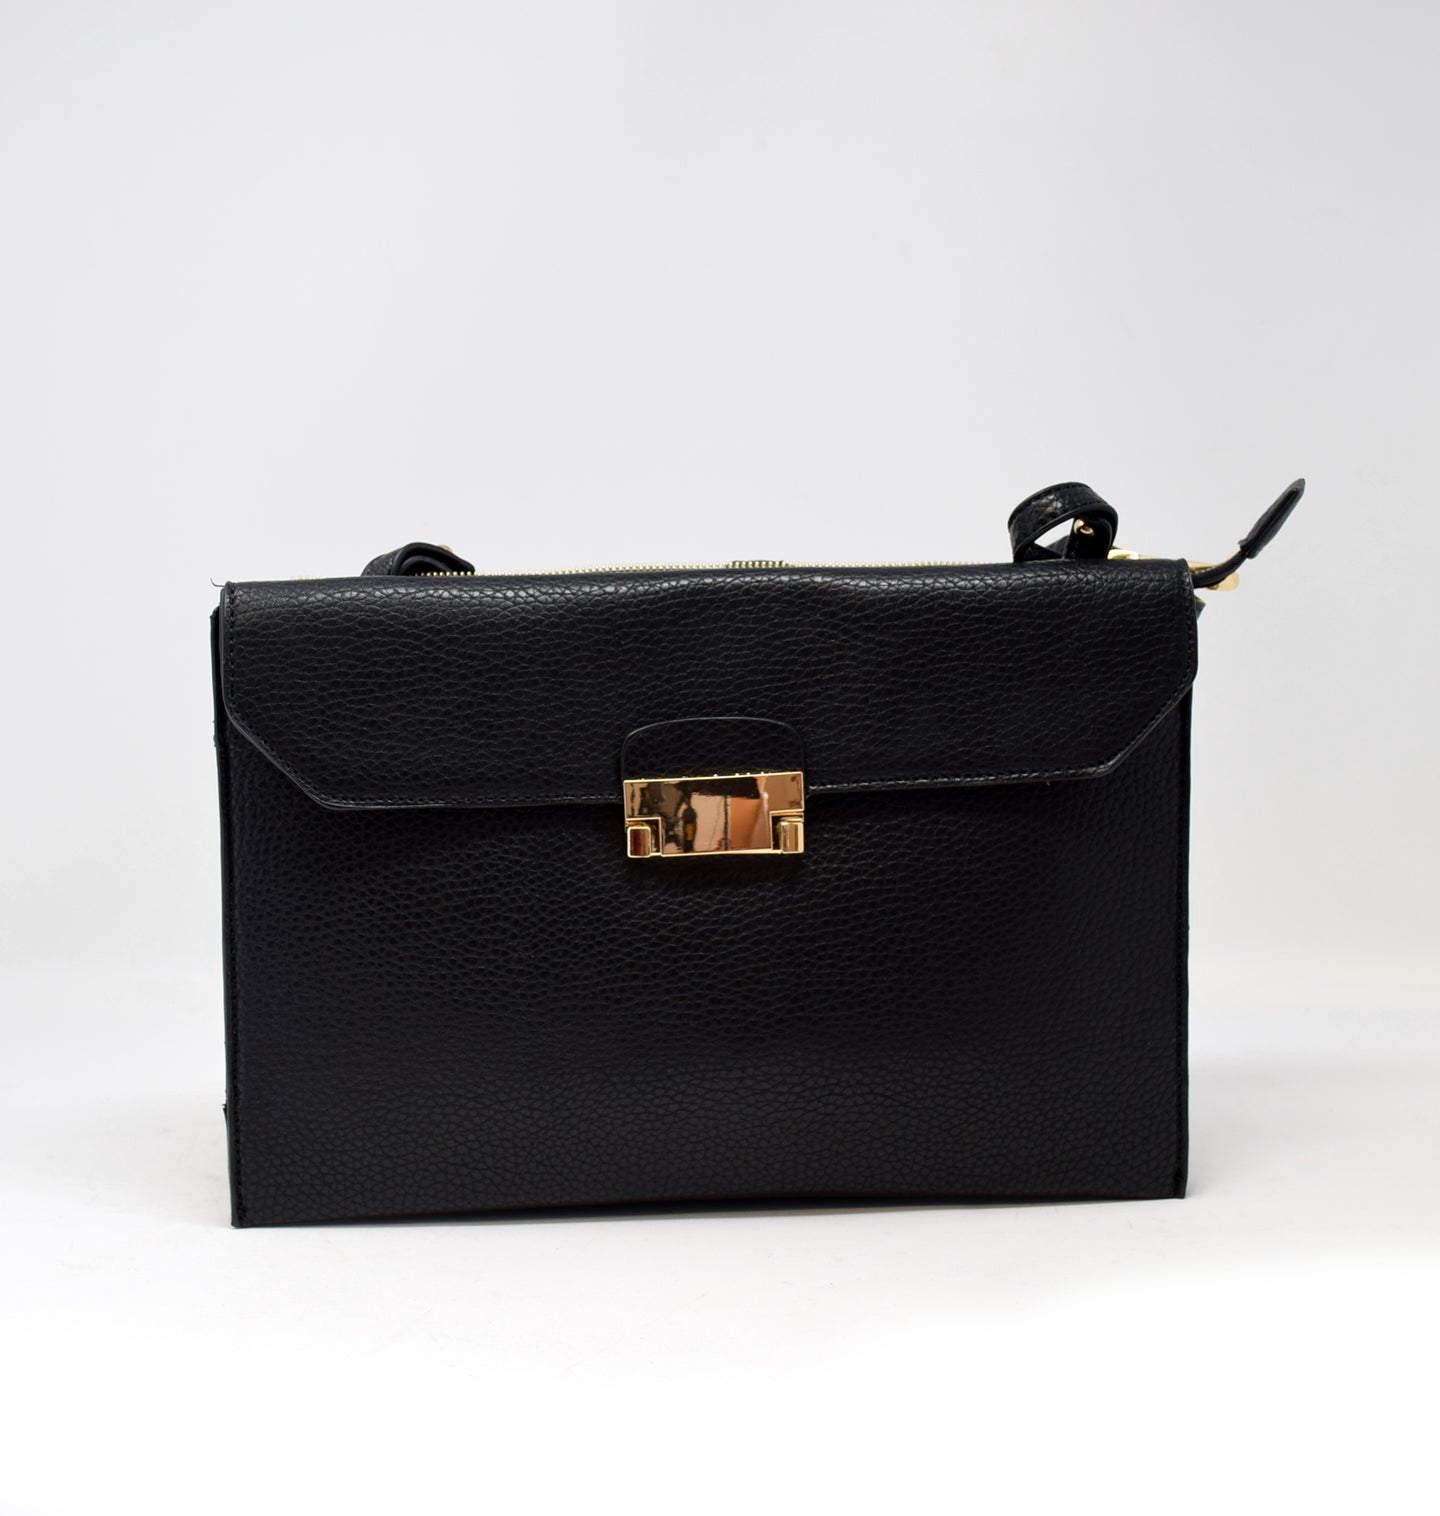 88622 Small Messenger